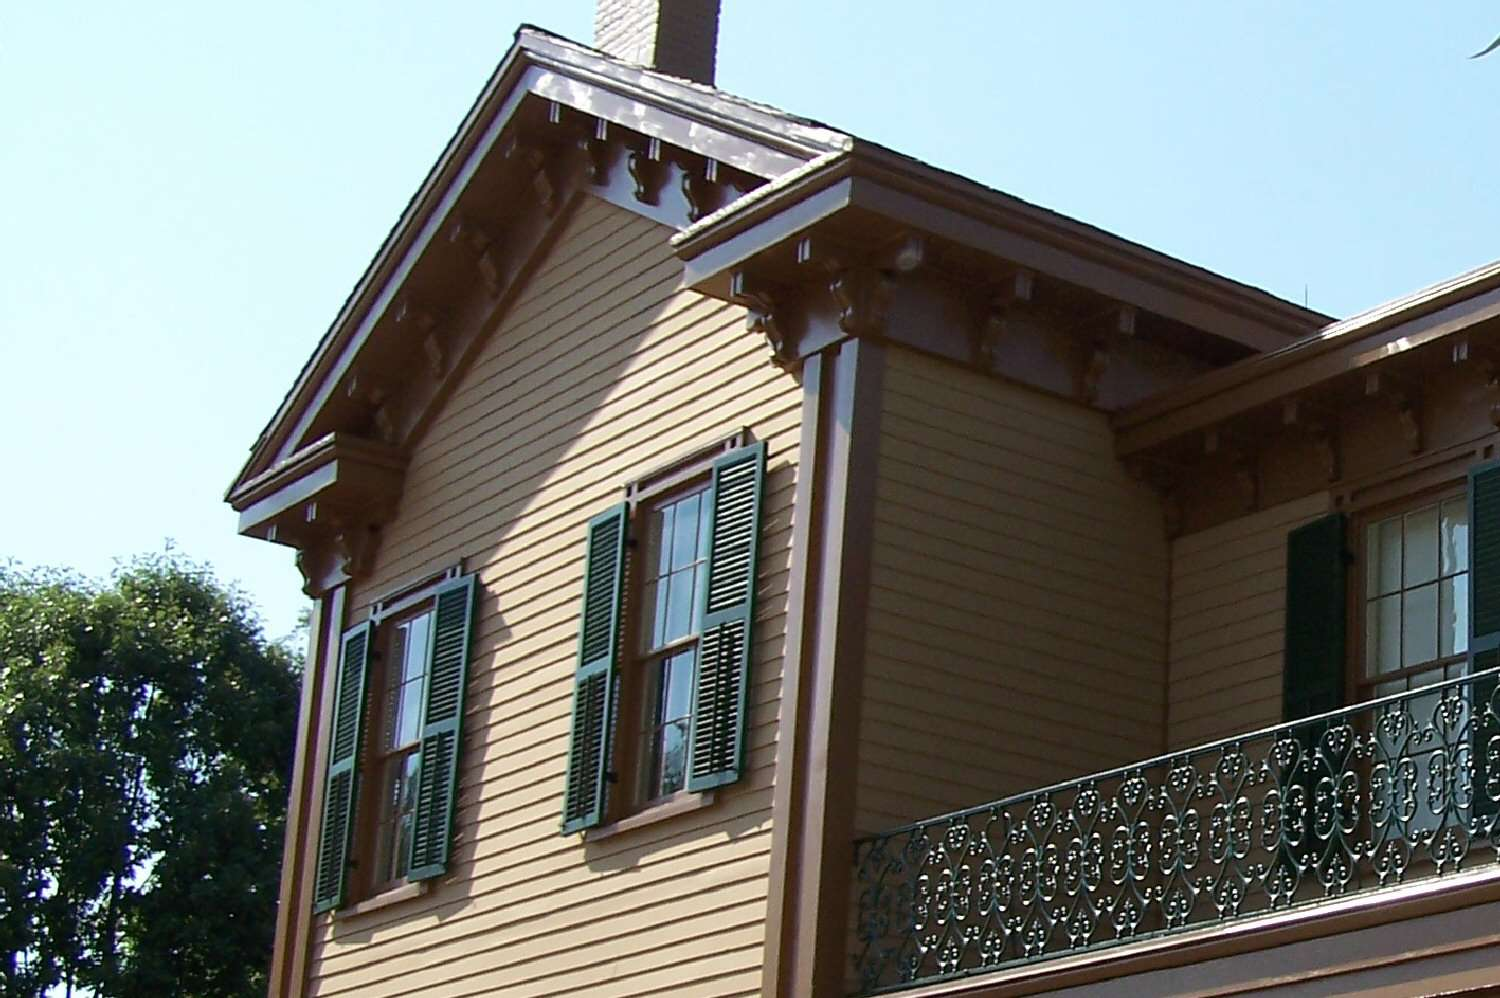 Upper floor detail of Abraham Lincoln's home in Springfield, Illinois